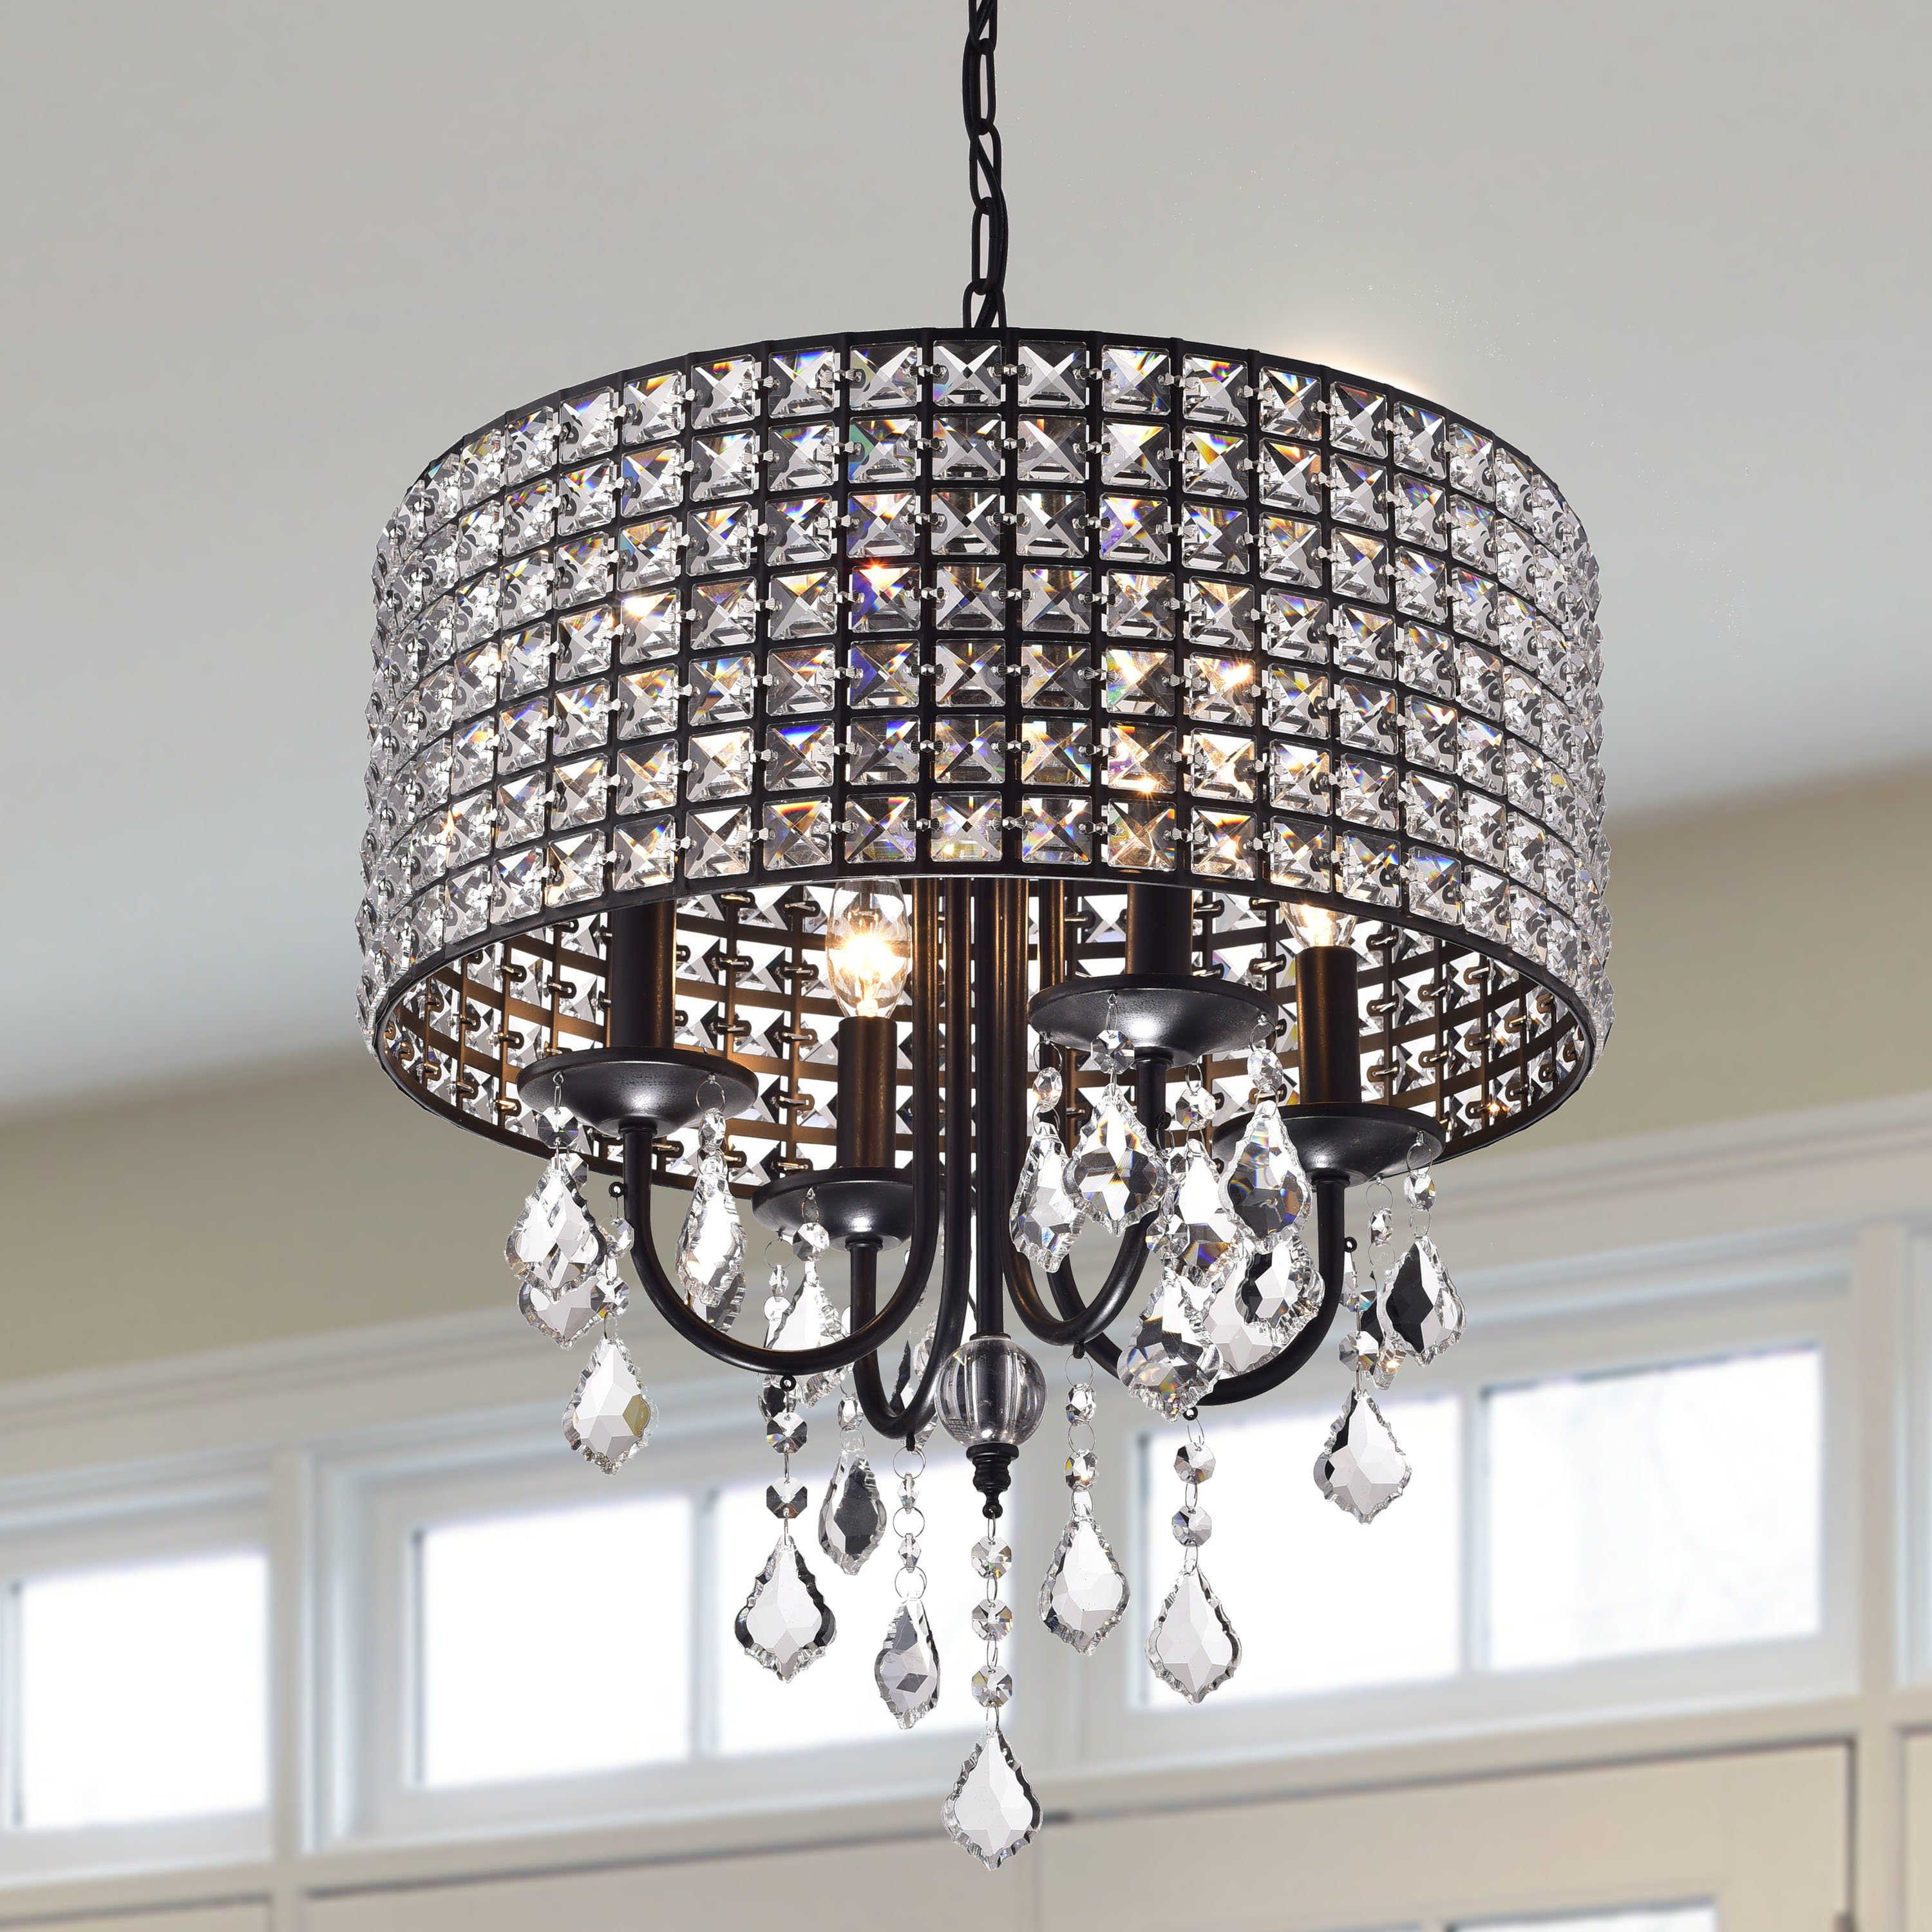 Albano 4 Light Crystal Chandelier Within Jill 4 Light Drum Chandeliers (View 15 of 30)